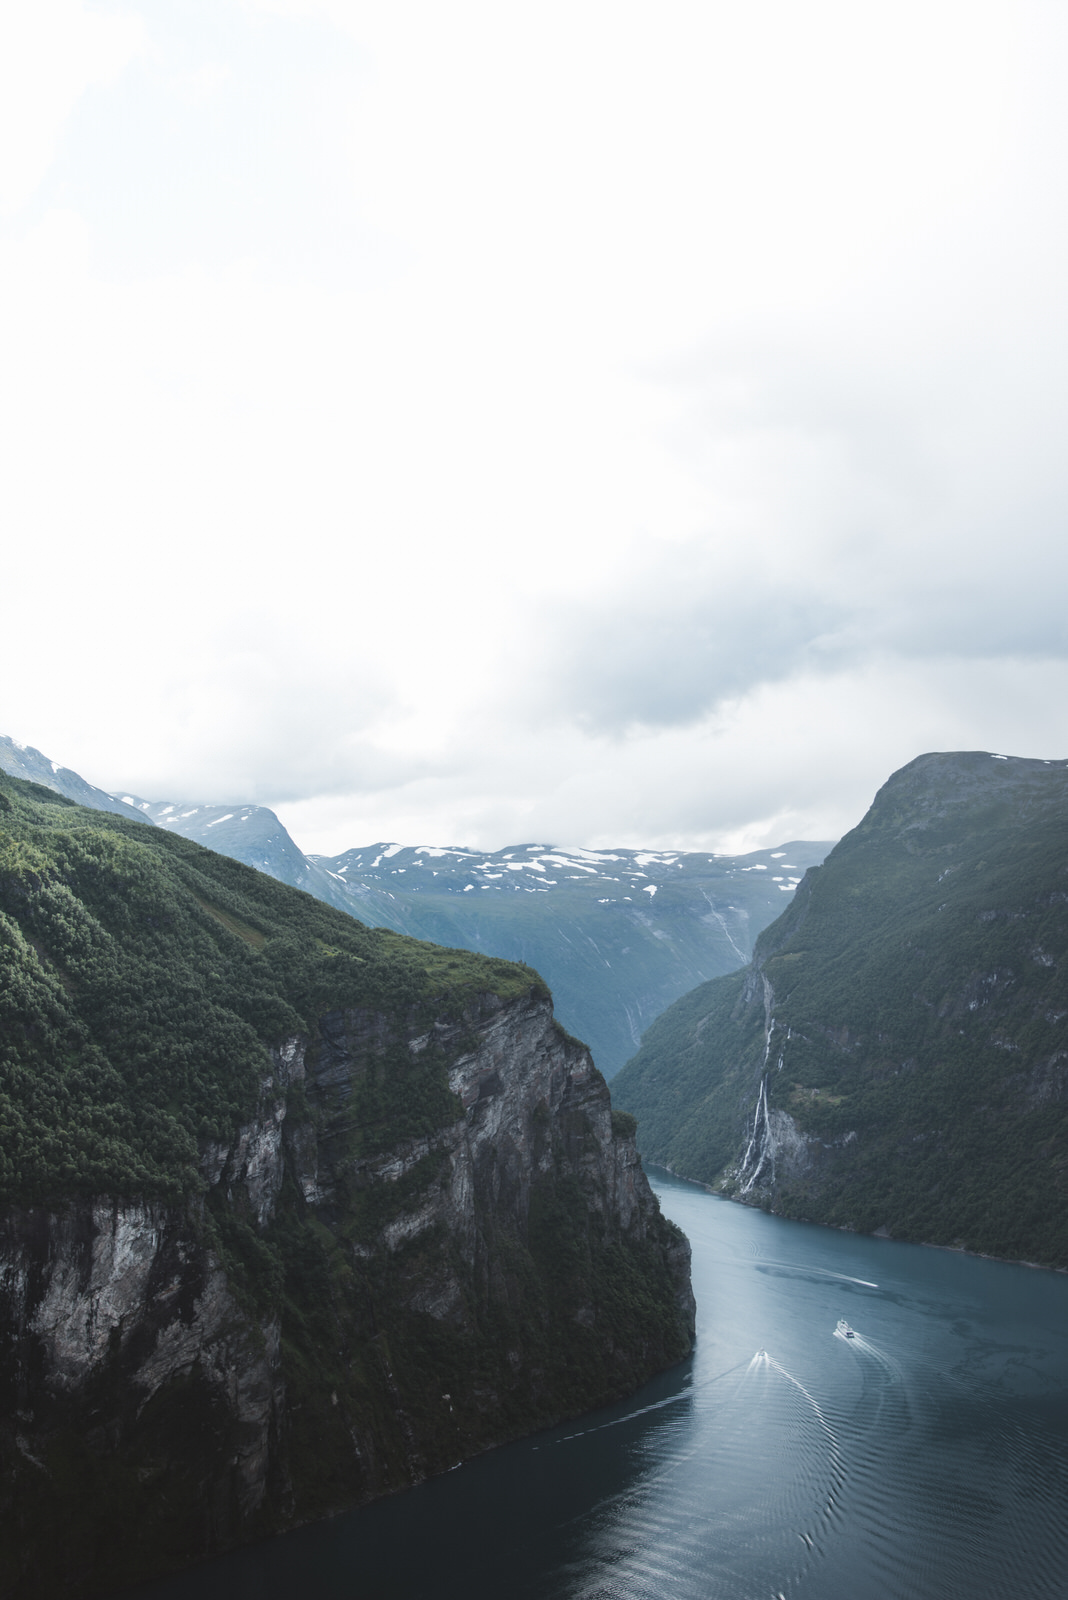 norway 2016 road trip part 5 dalsnibba geiranger